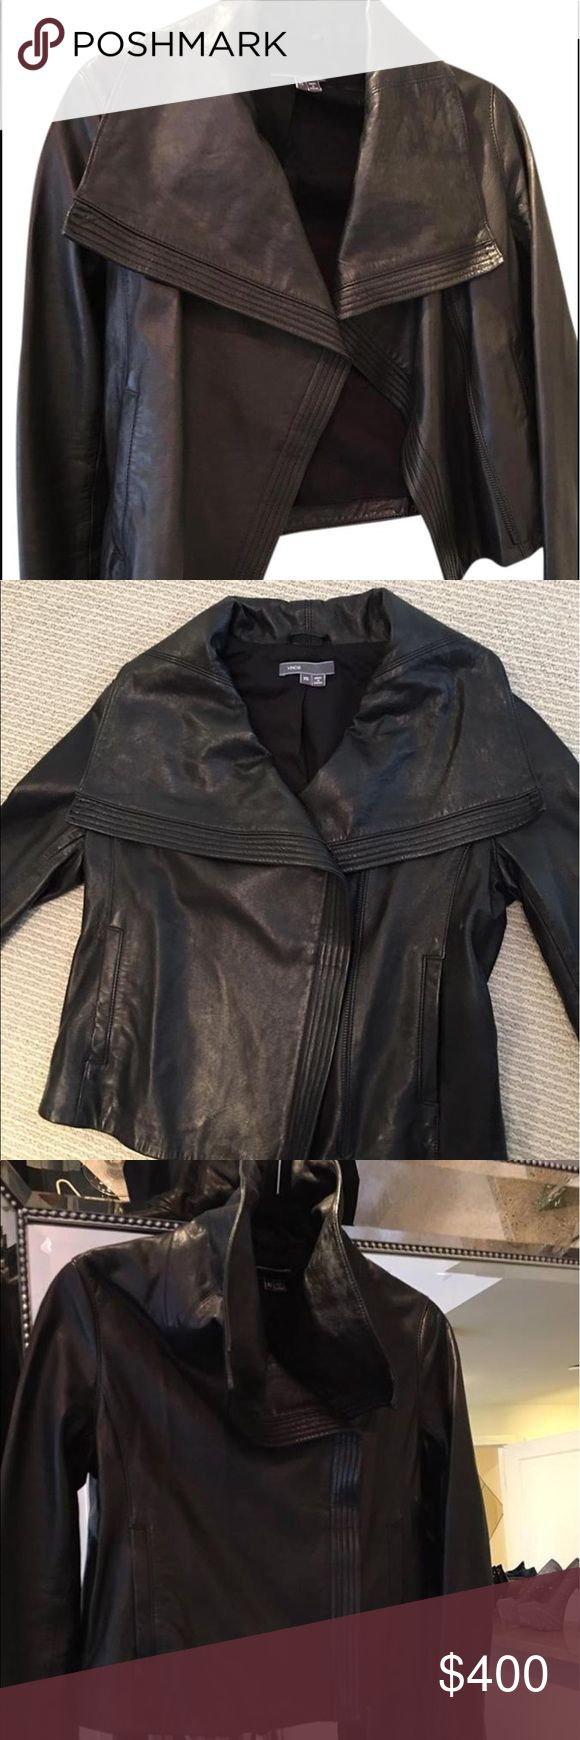 Vince 100% Lambskin Leather Jacket Barely worn Size 2 stunning leather jacket Vince Jackets & Coats